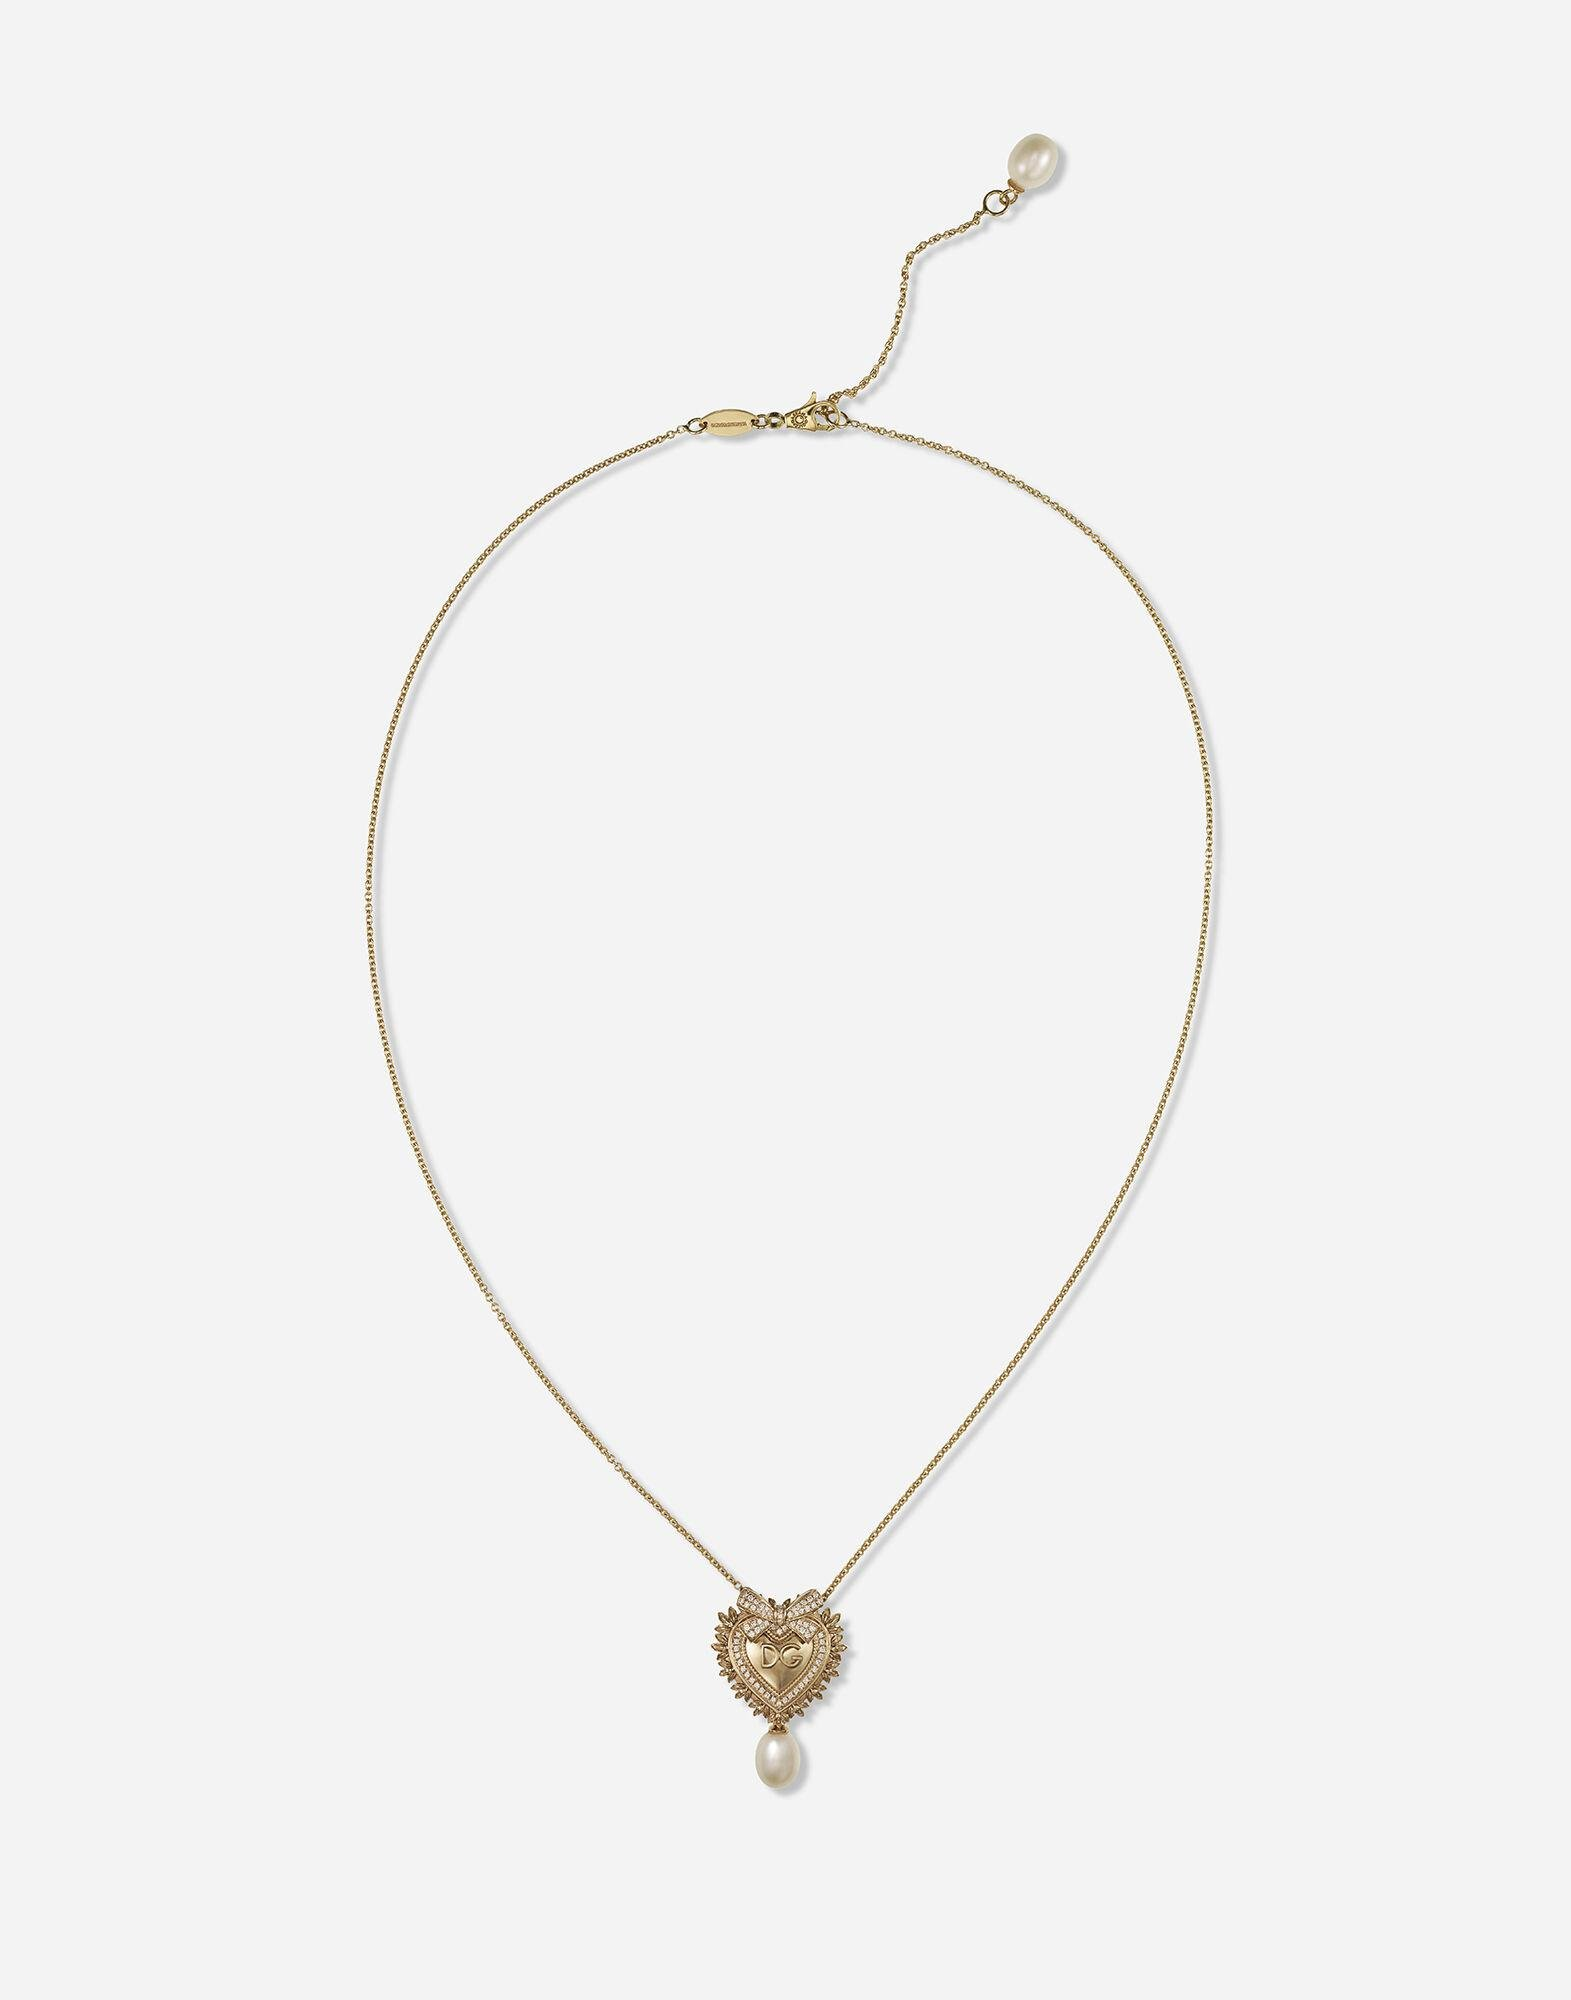 Devotion necklace in yellow gold with diamonds and pearls